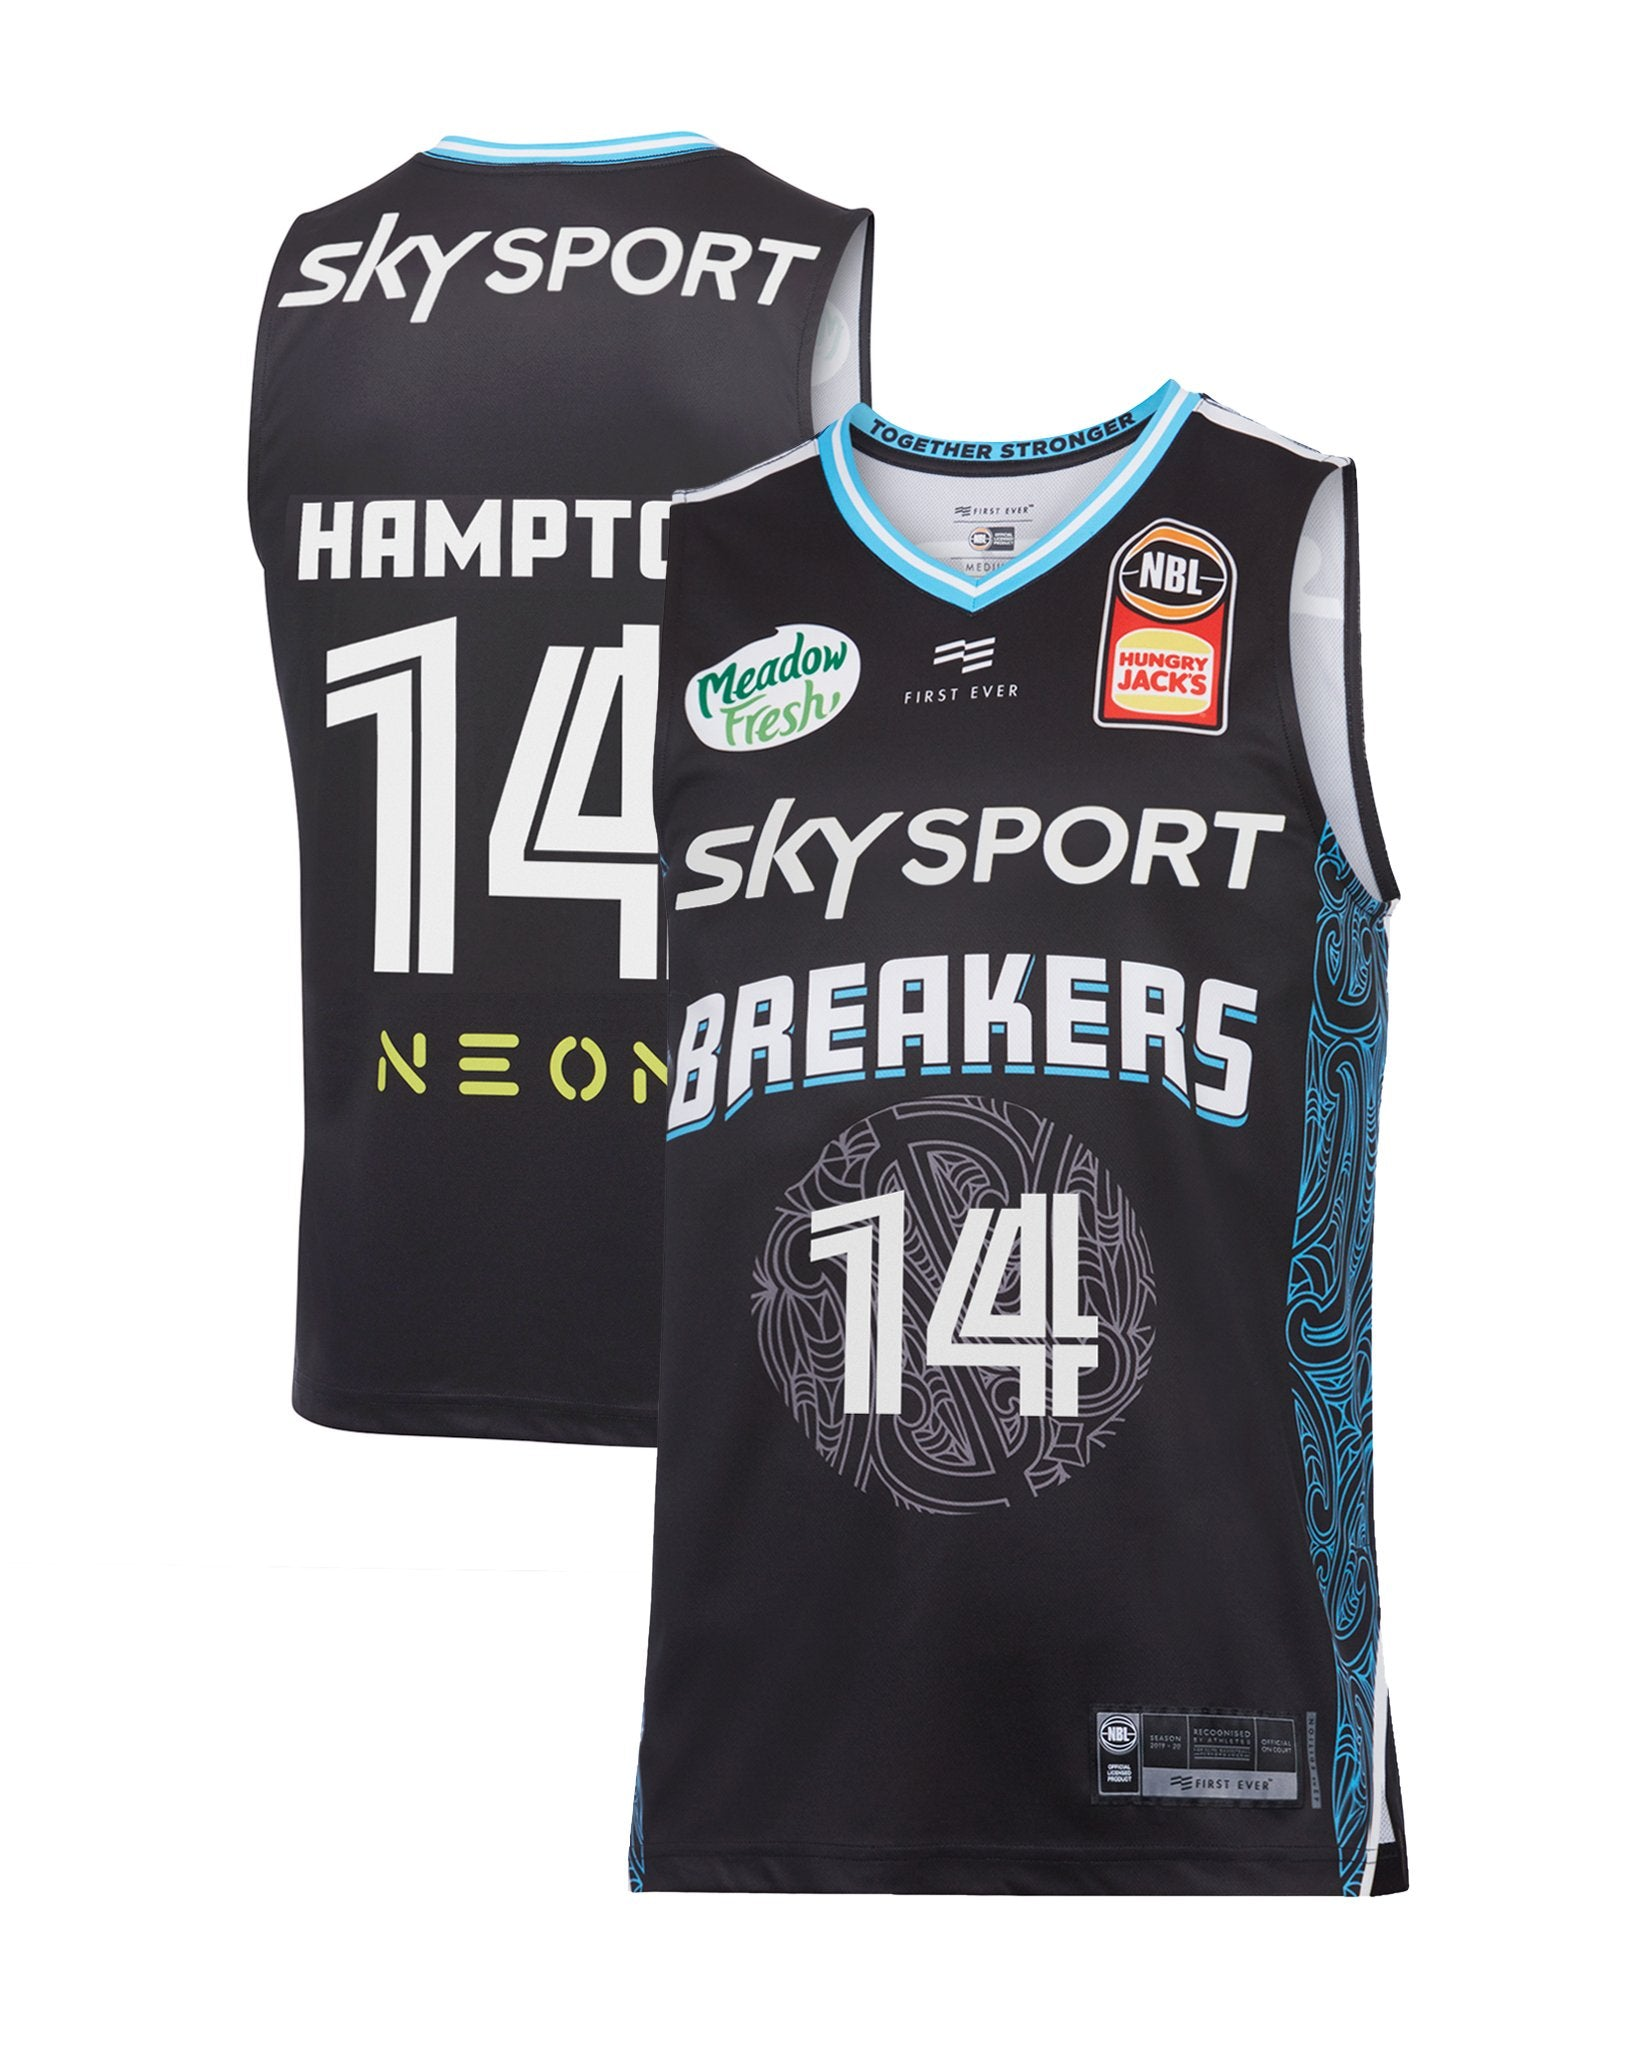 New Zealand Breakers 19/20 Coast To Coast Bundle - RJ Hampton